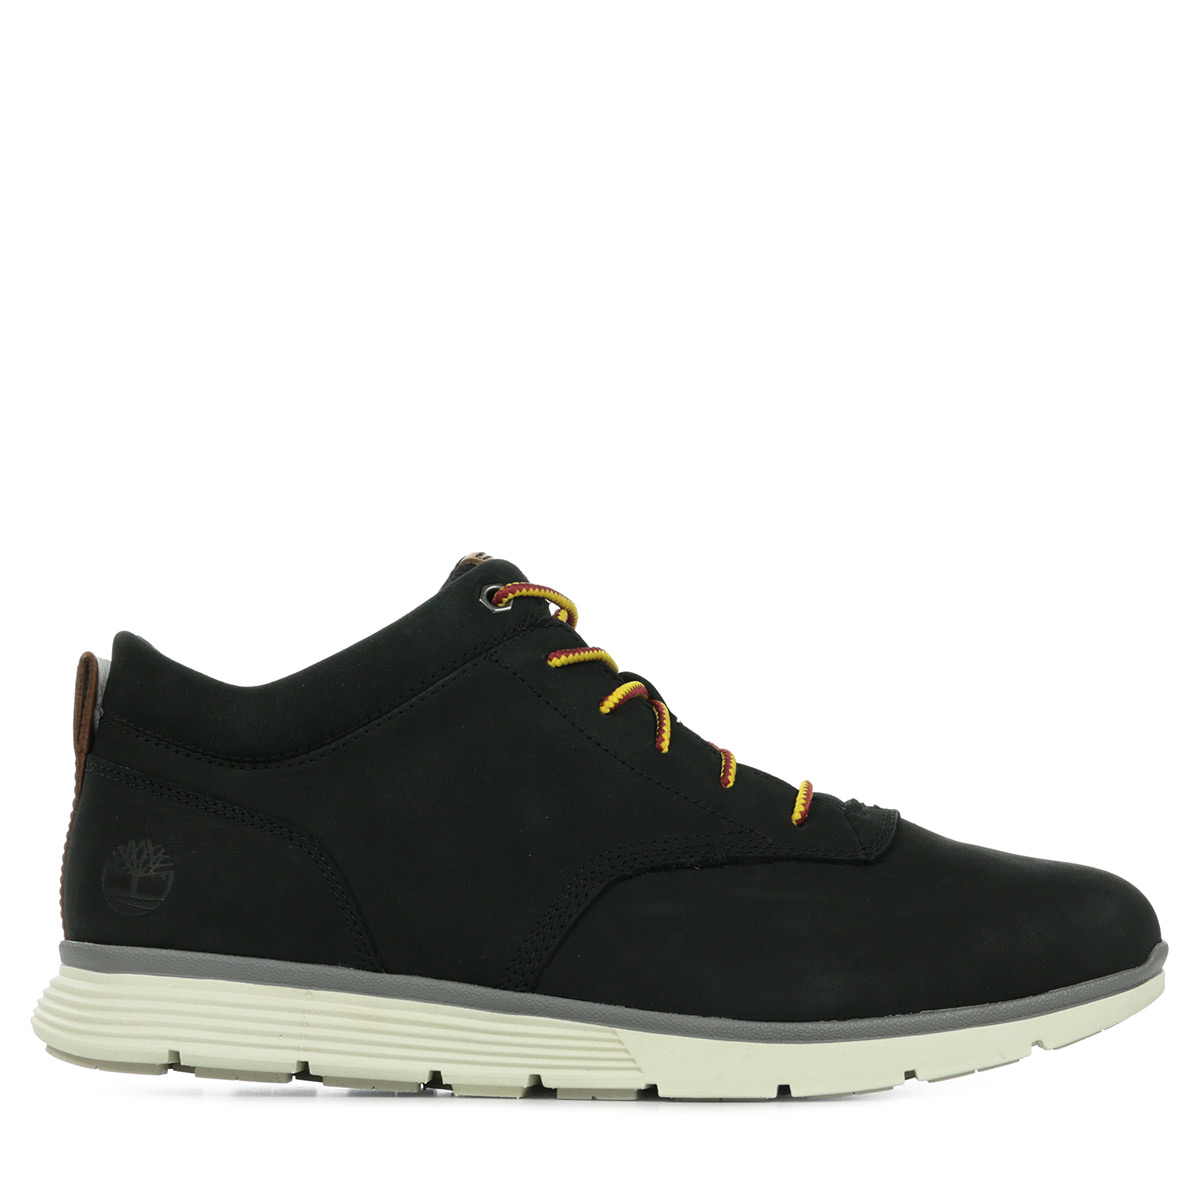 Mode Ca1ga9 Homme Timberland Baskets Half Cab Killington tqaaX0A